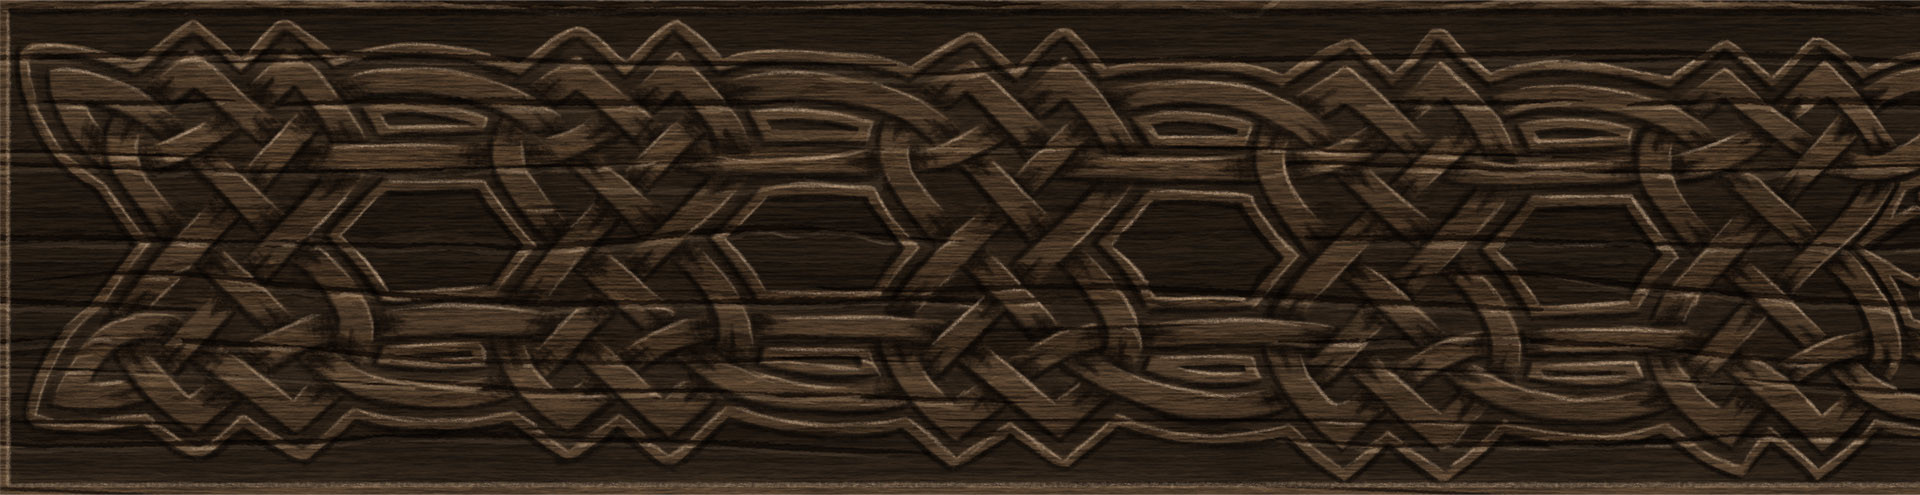 Tara solbrig celtic knot carved wood hand painted texture